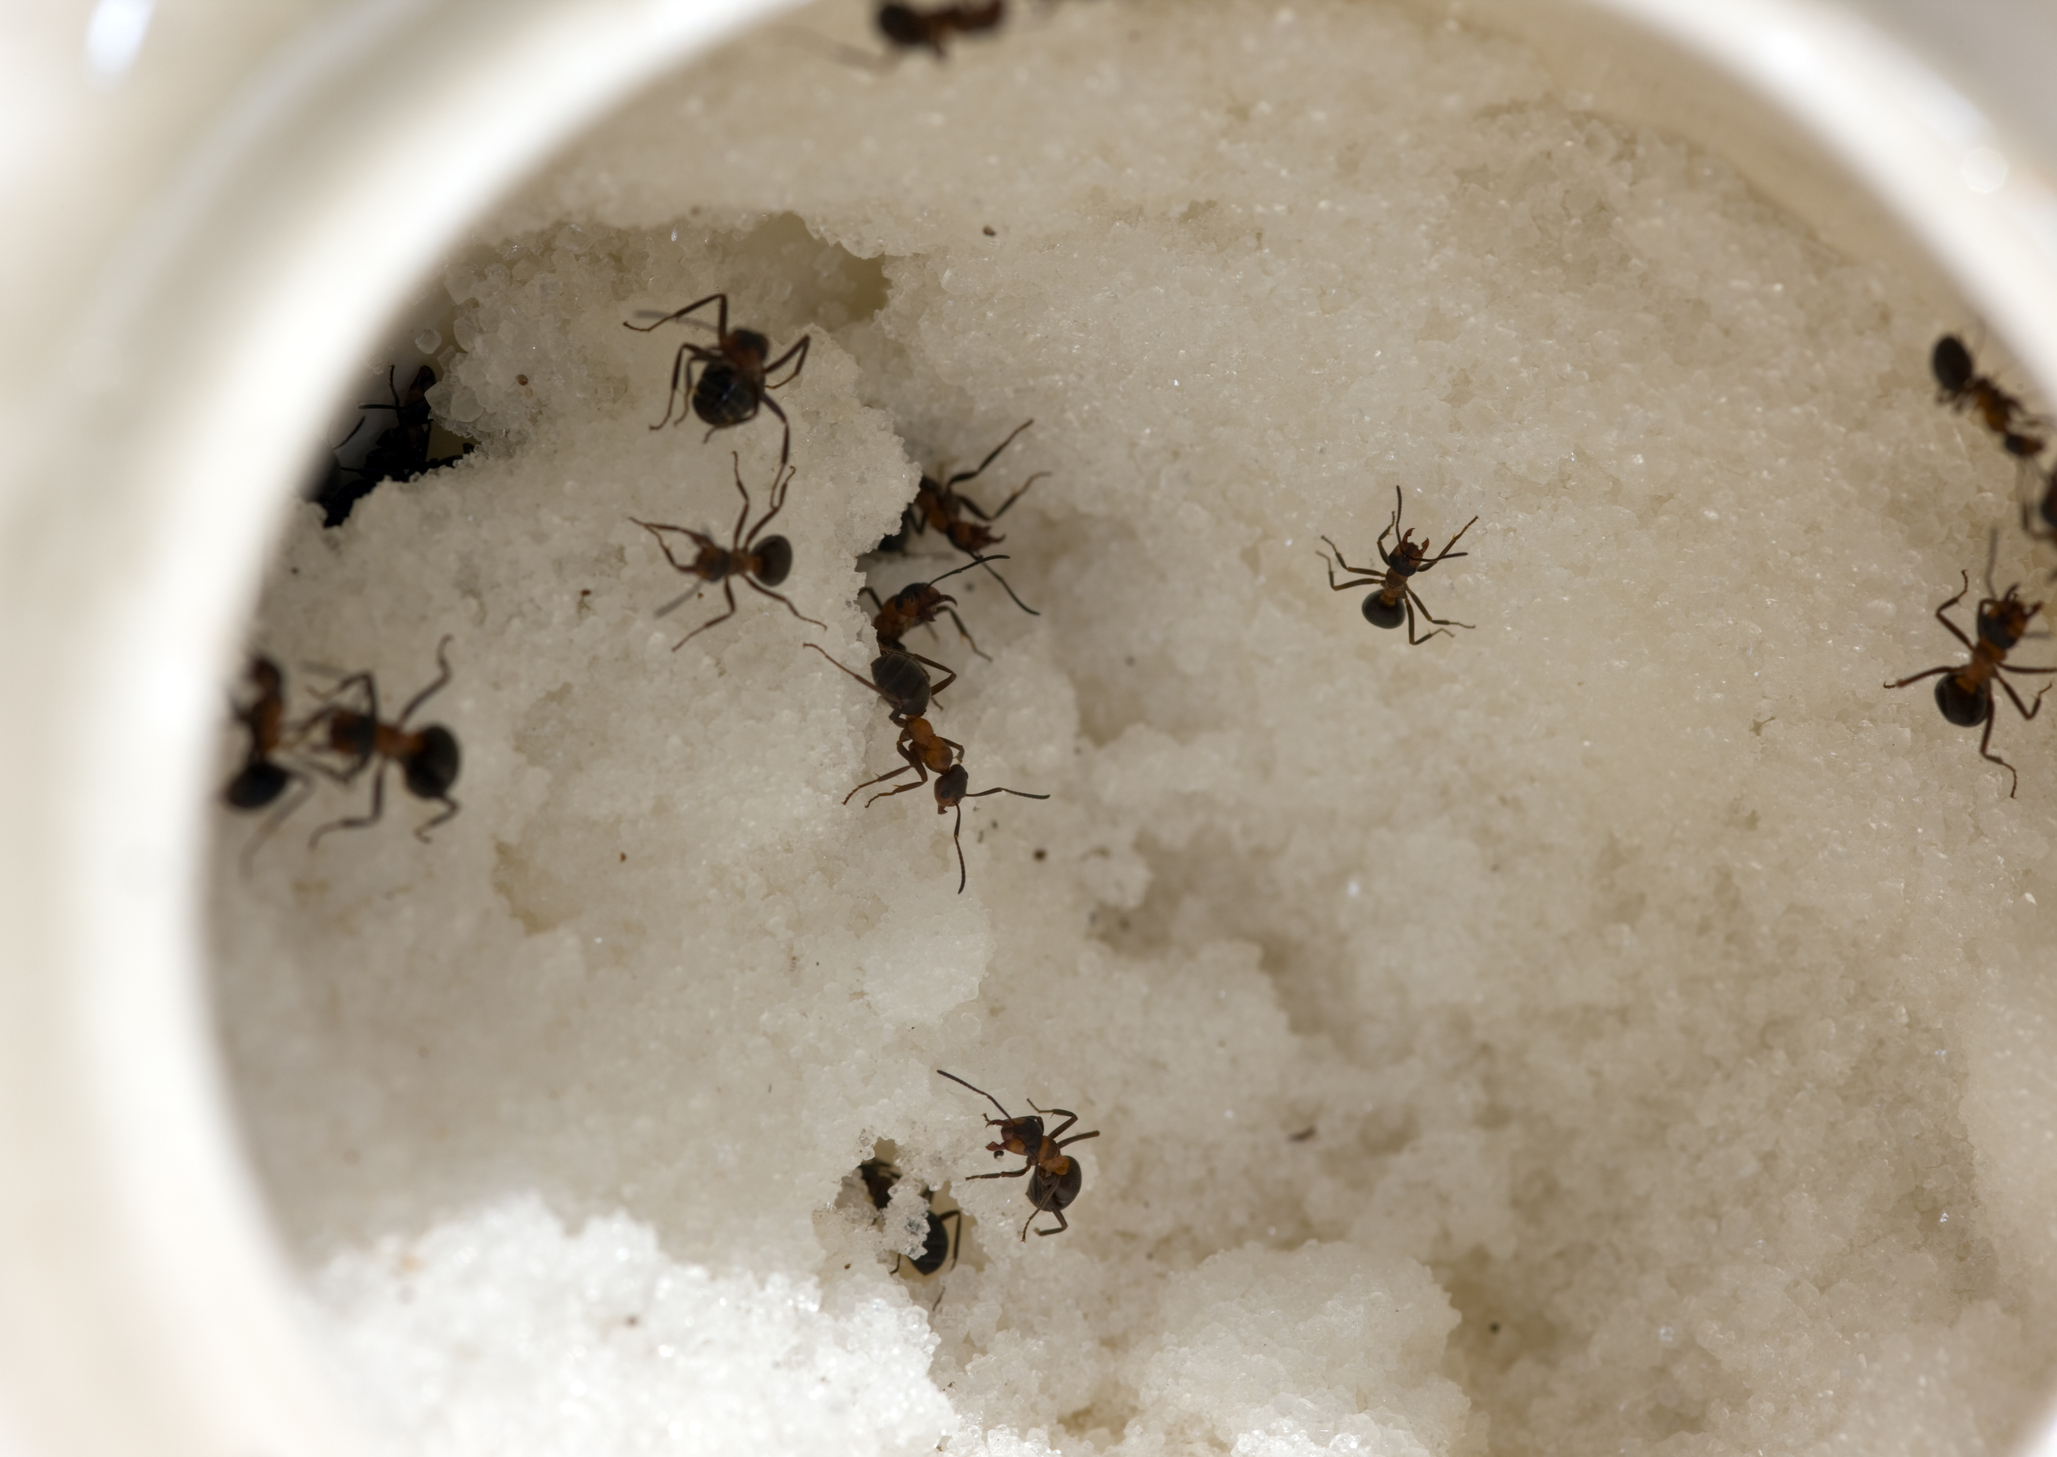 How To Get Rid Of Sugar Ants - 101CleaningSolutions.com